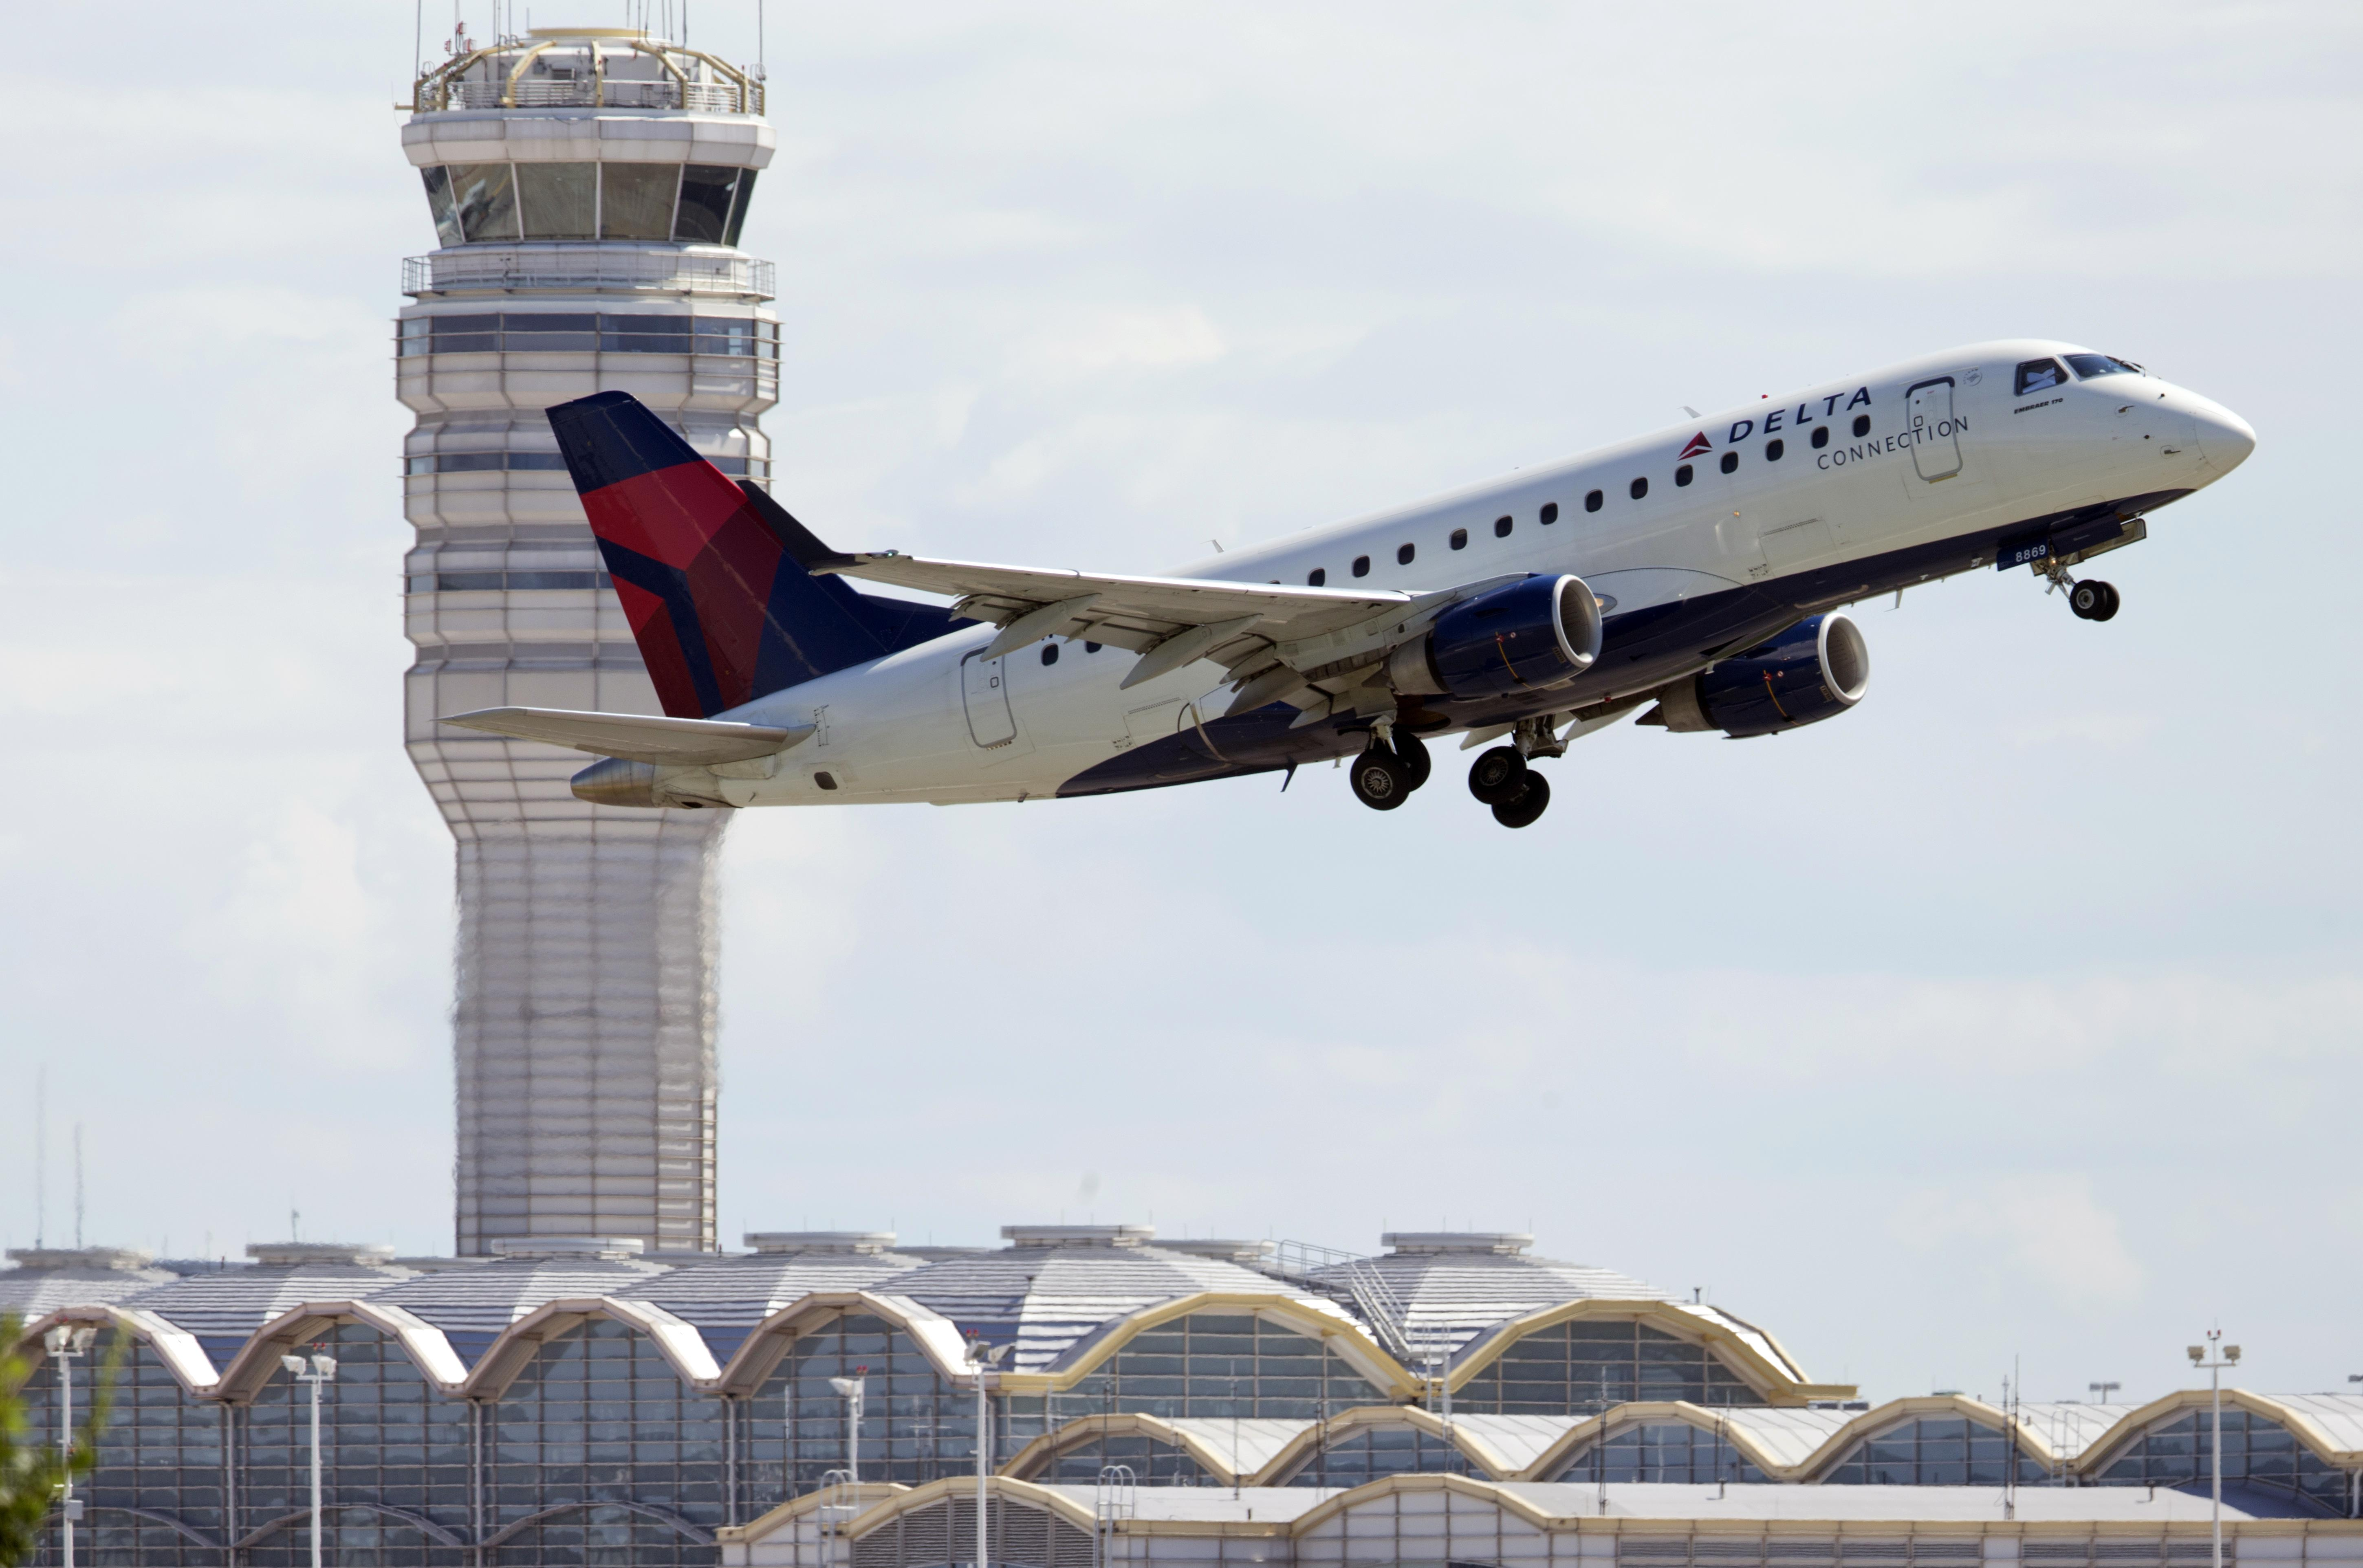 Florida man indicted in brawl on Delta flight to China | The